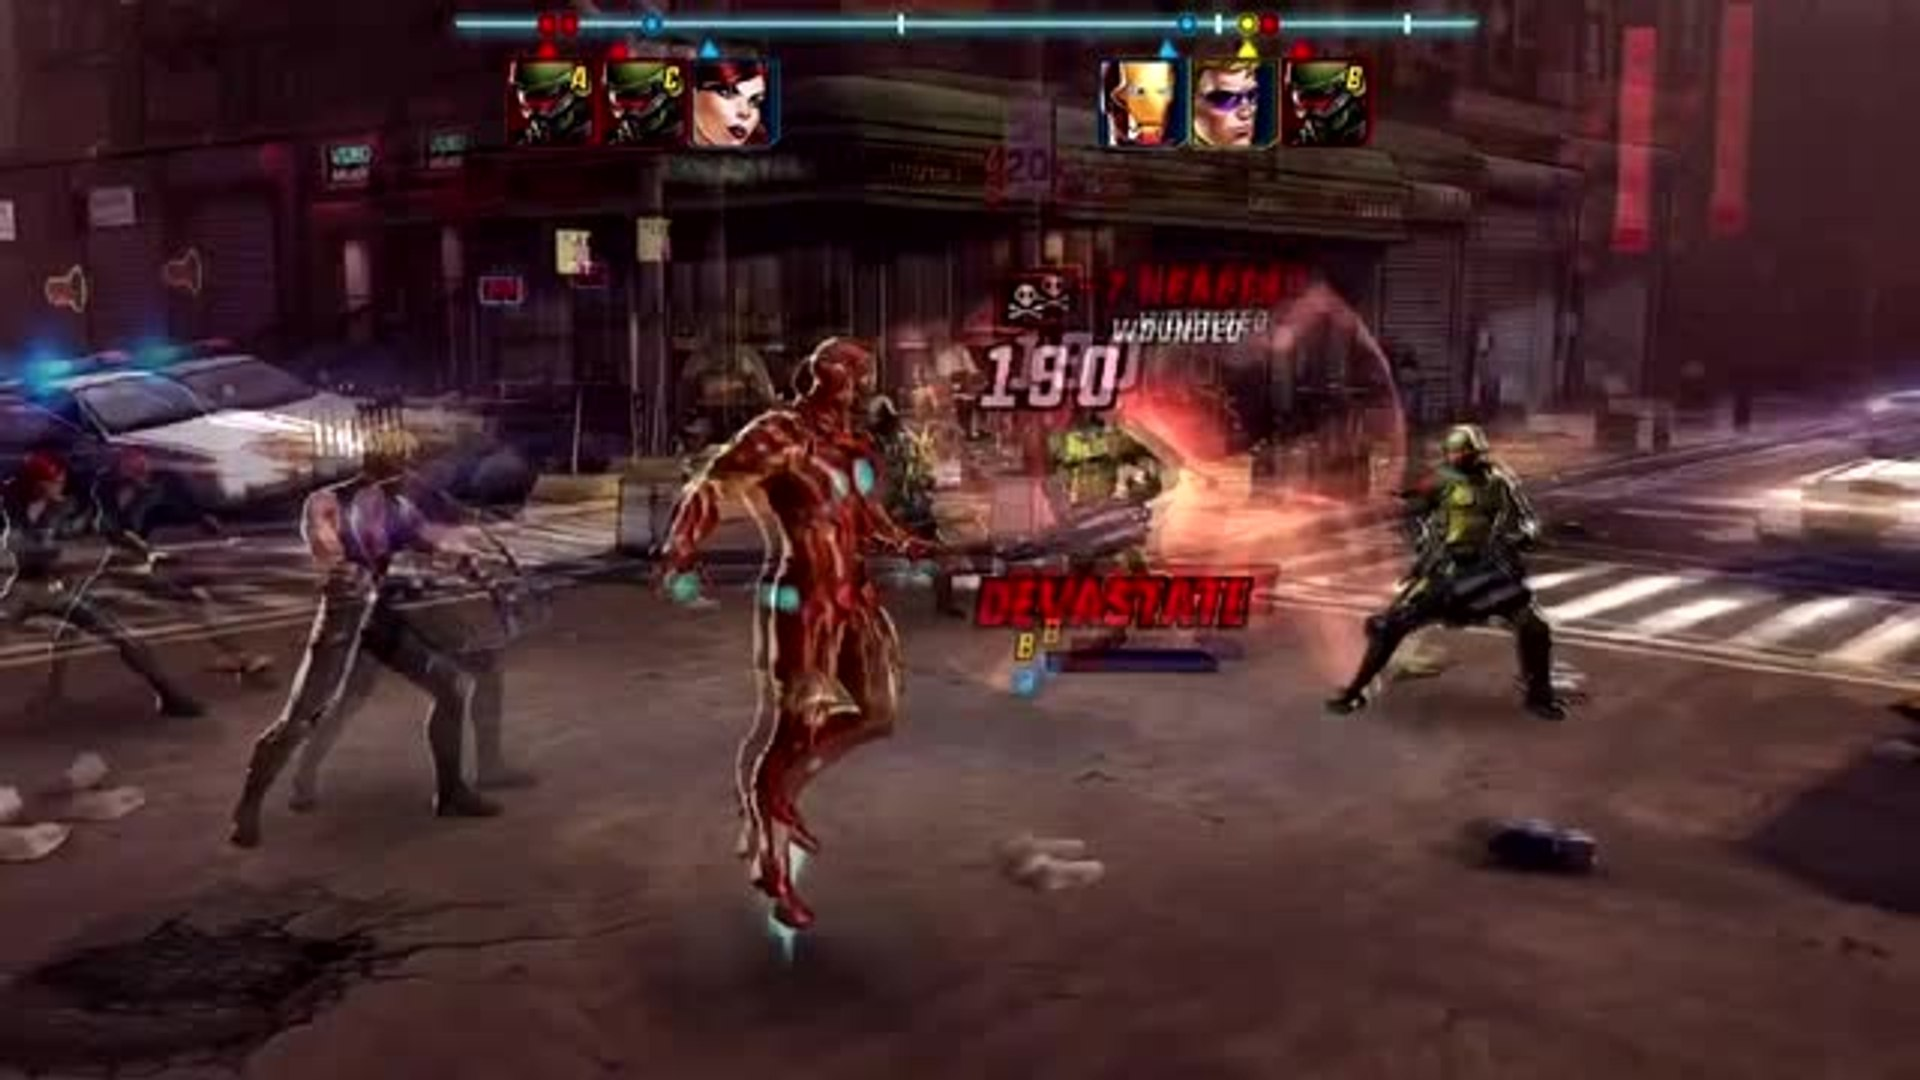 Battle against the evils of the marvel universe with the fast-paced RPG Marvel Avengers Alliance 2